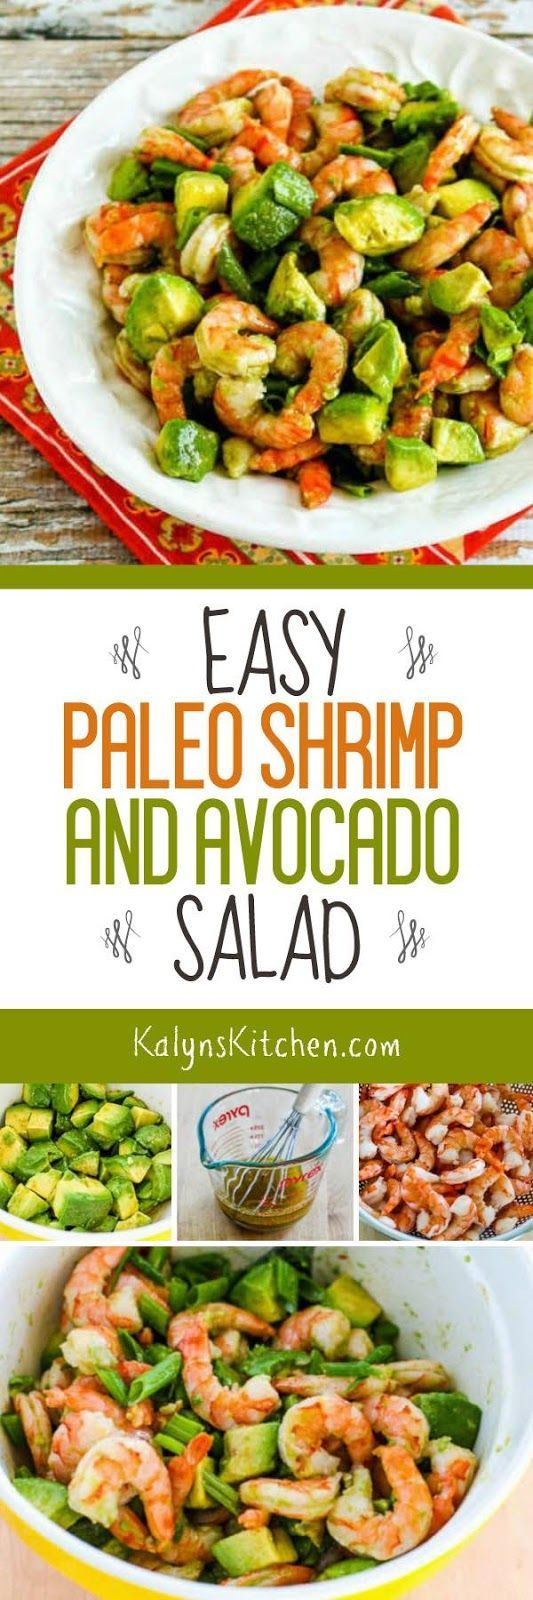 Easy Paleo Shrimp and Avocado Salad is also Whole 30, Low-Carb, and Gluten-free! [found on KalynsKitchen.com]